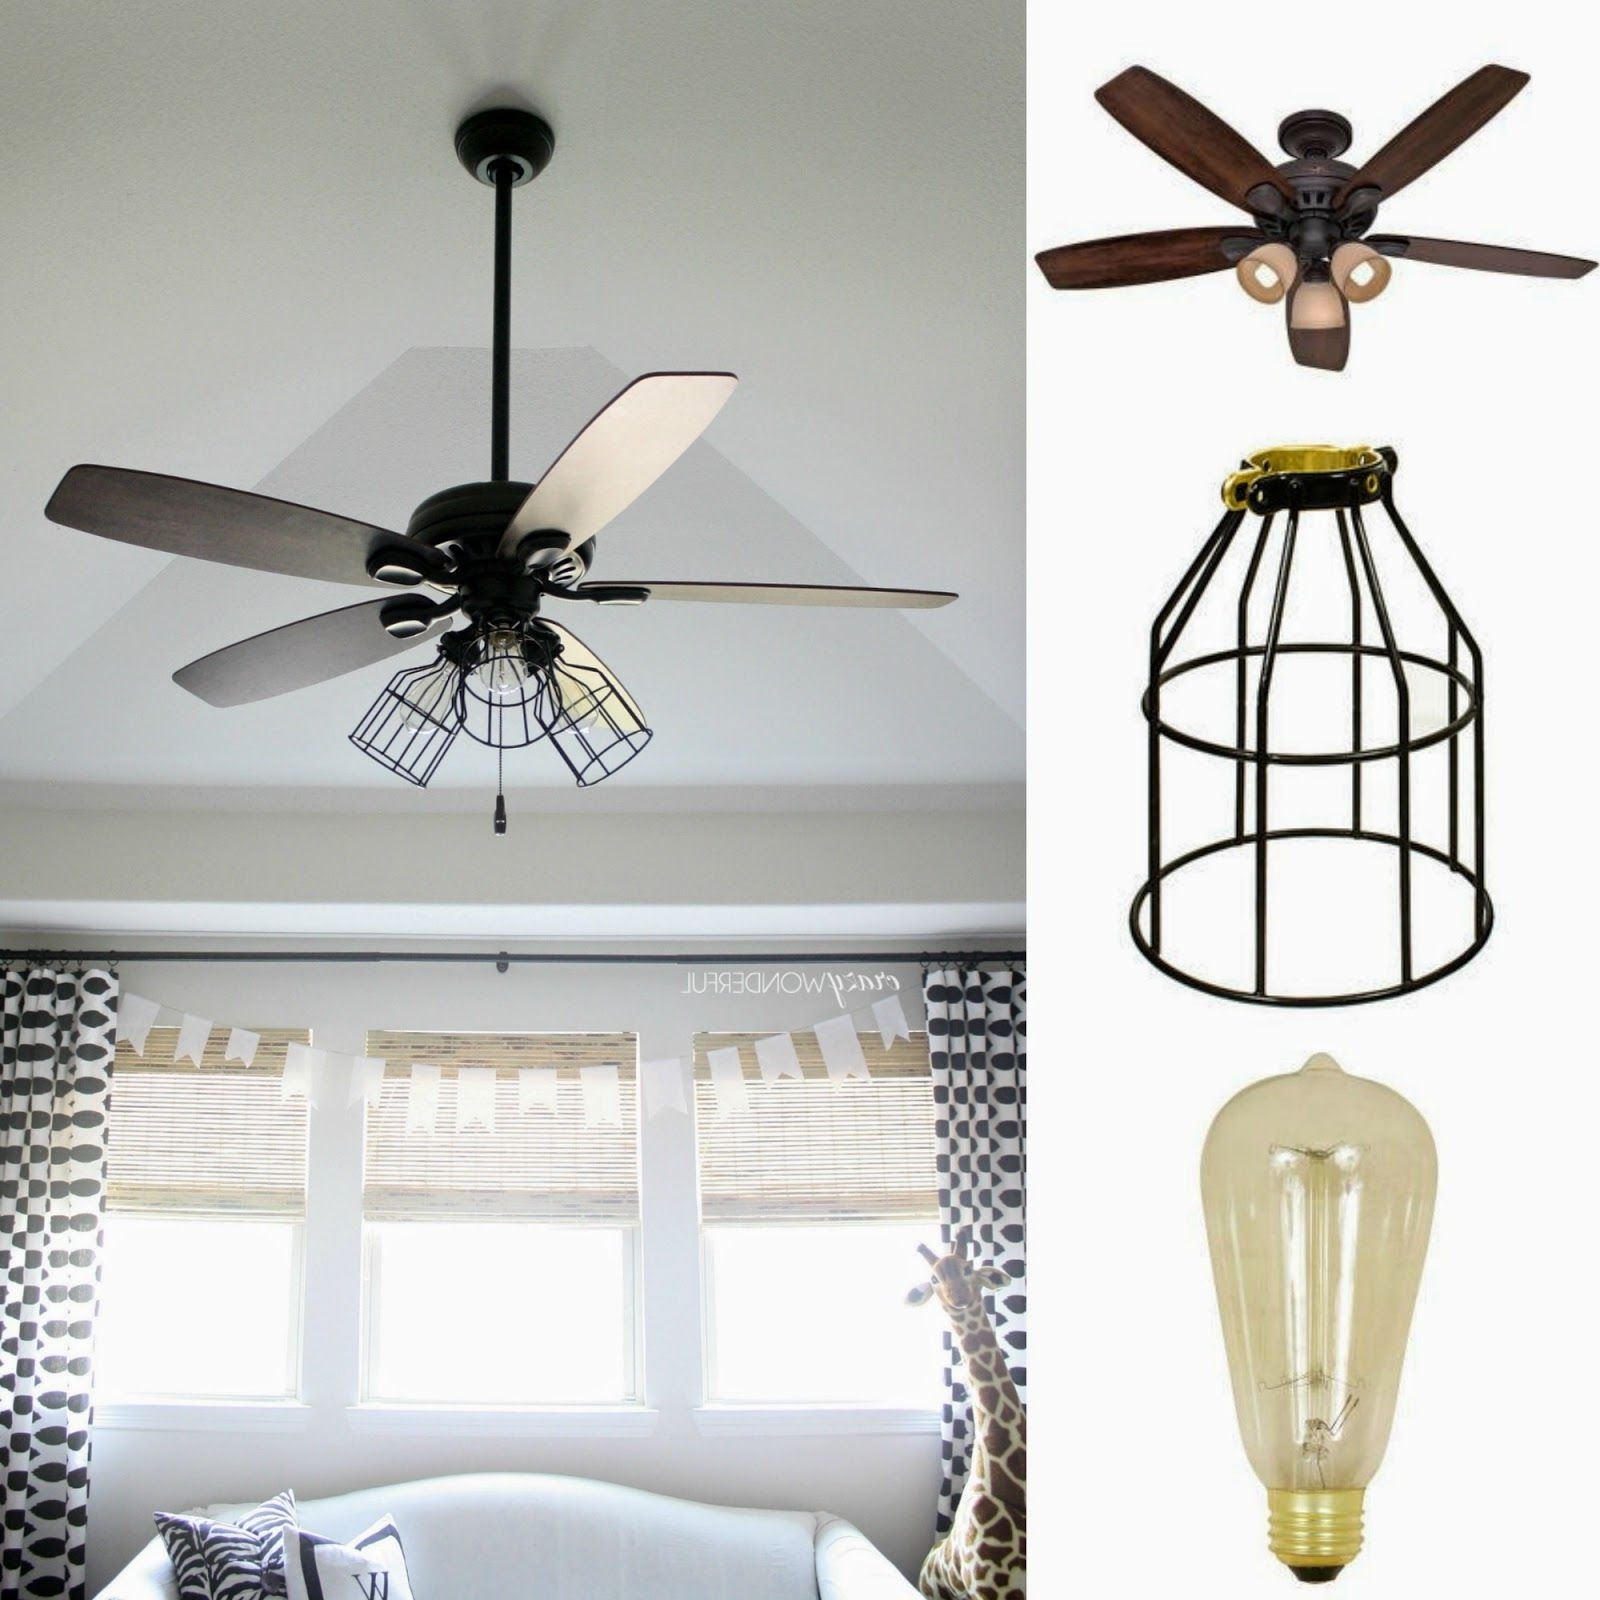 2018 Crazy Wonderful: Diy Cage Light Ceiling Fan (View 14 of 20)